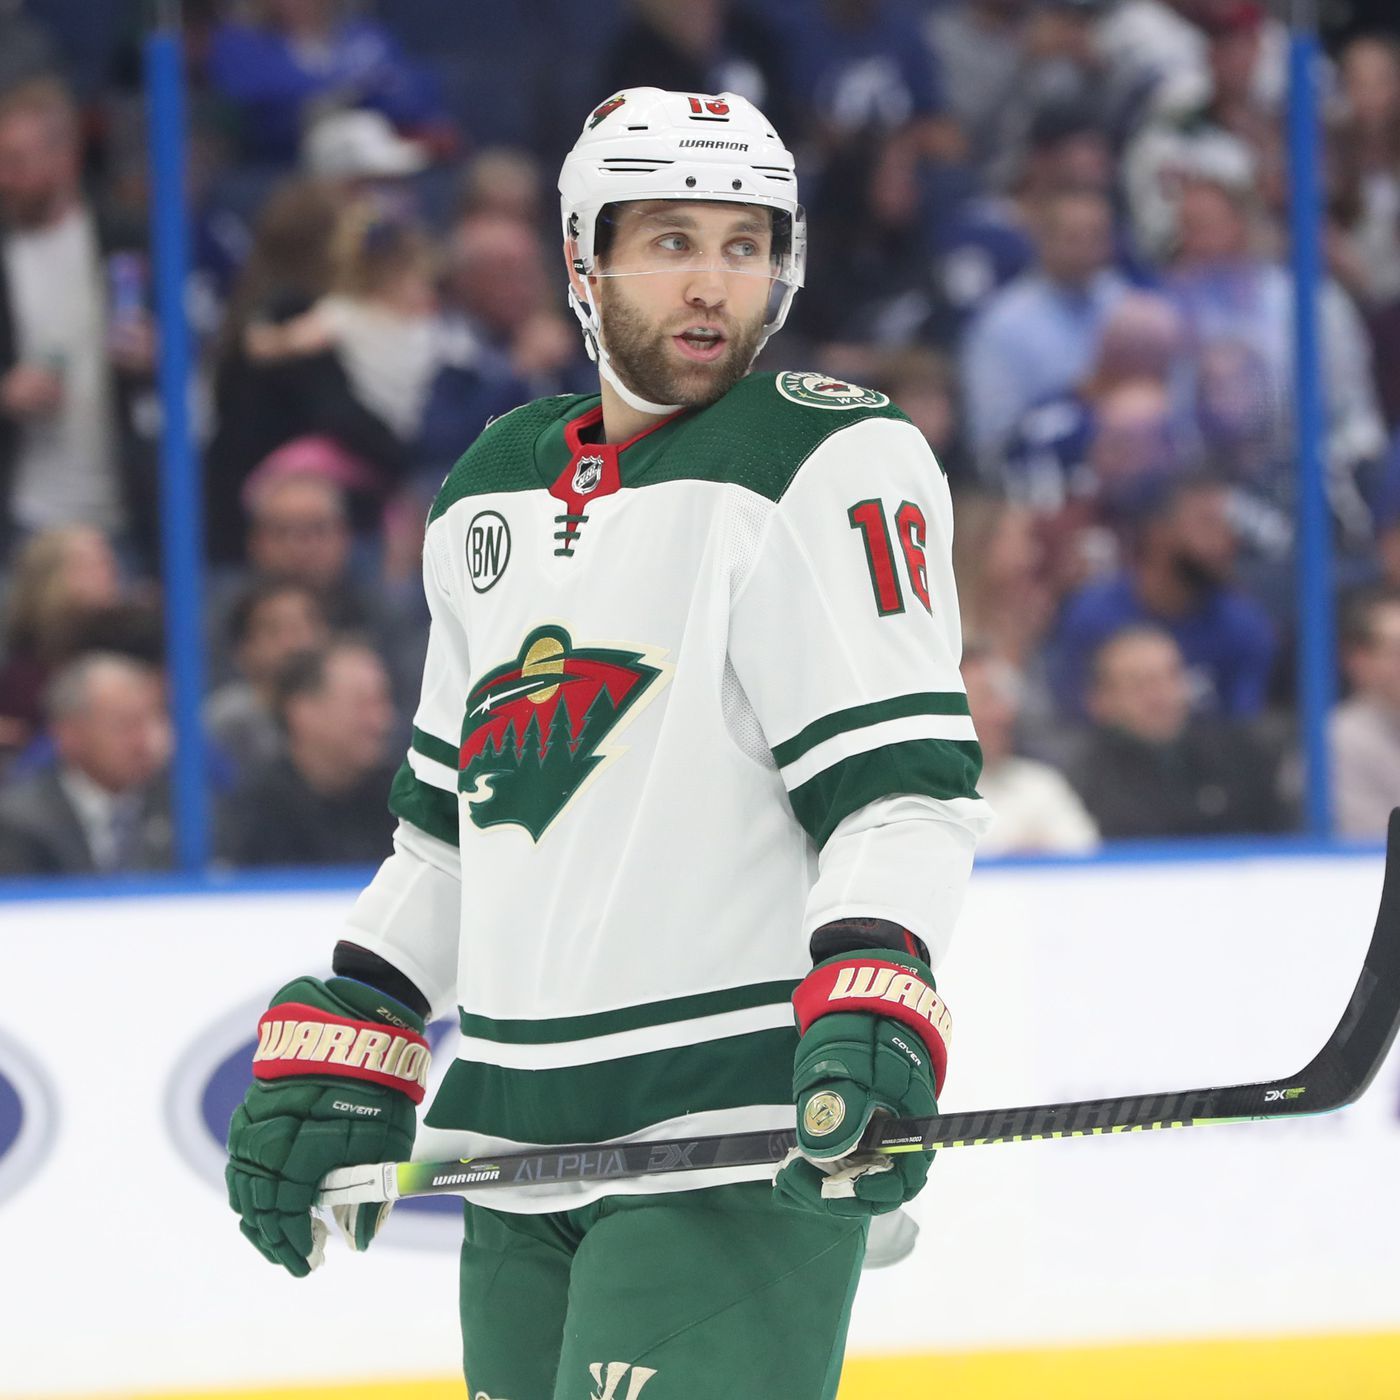 Let S Talk About The Comments Of Minnesota Wild Forward Jason